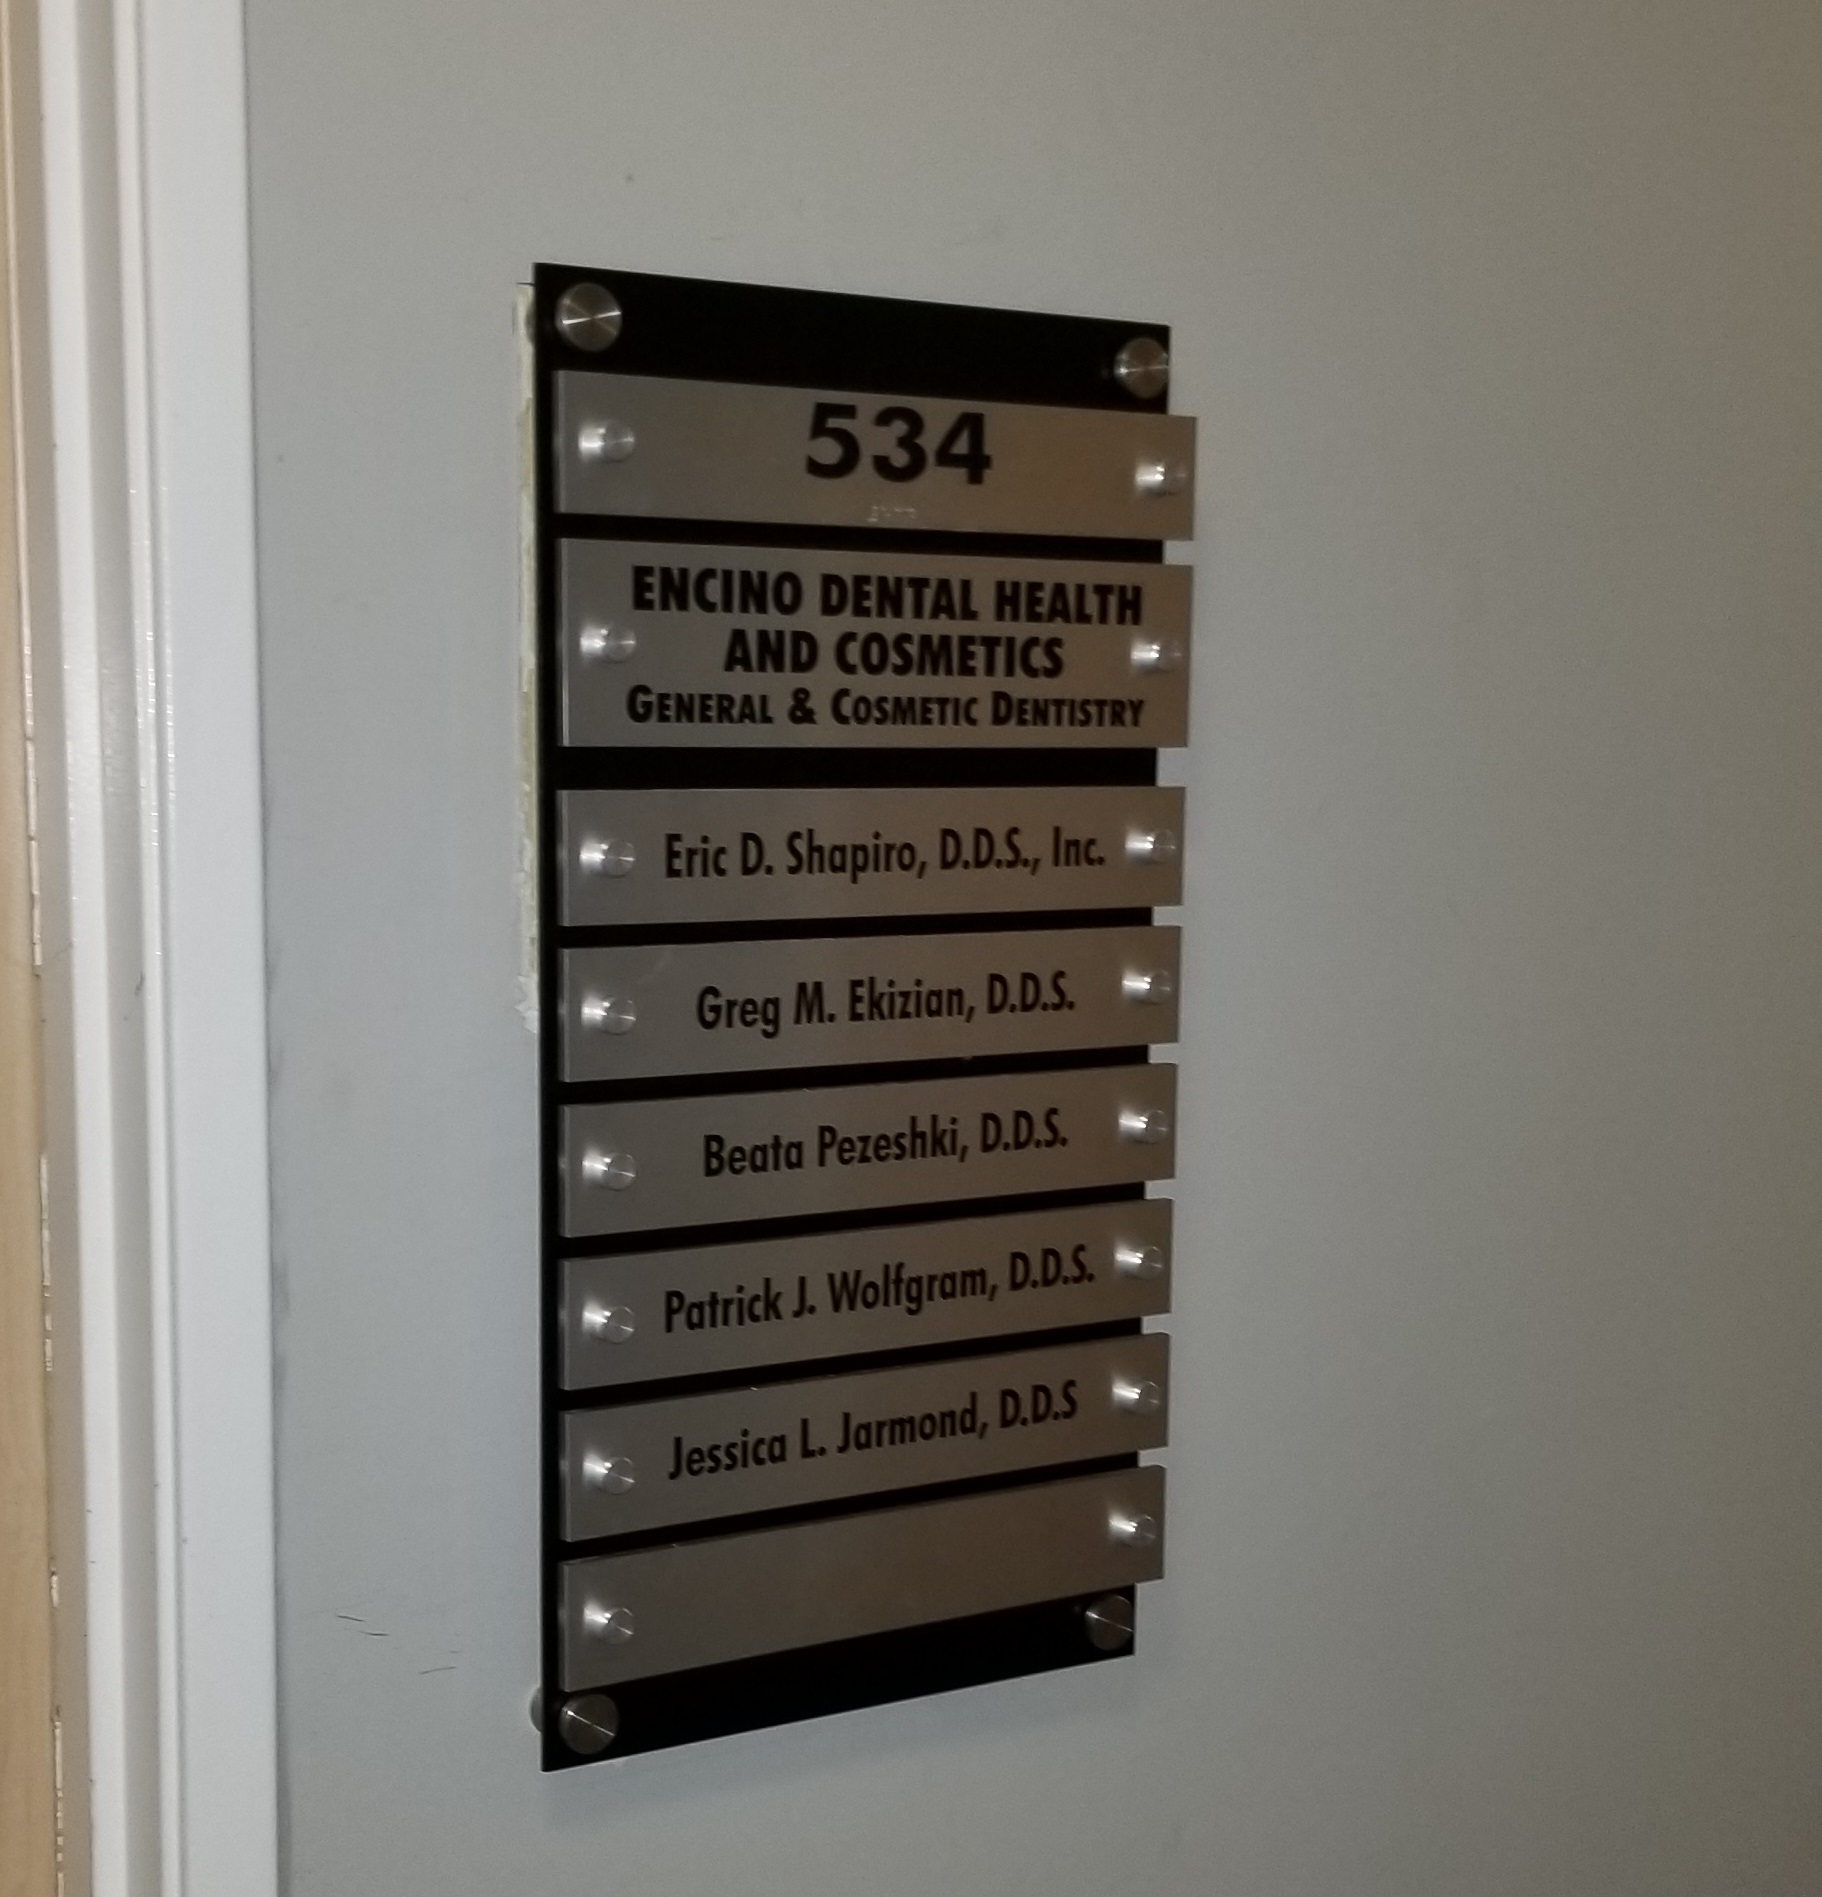 Clinics and medical offices have employees, patients and a pandemic to contend with. Indoor medical office signs give directions and remind them of protocols.